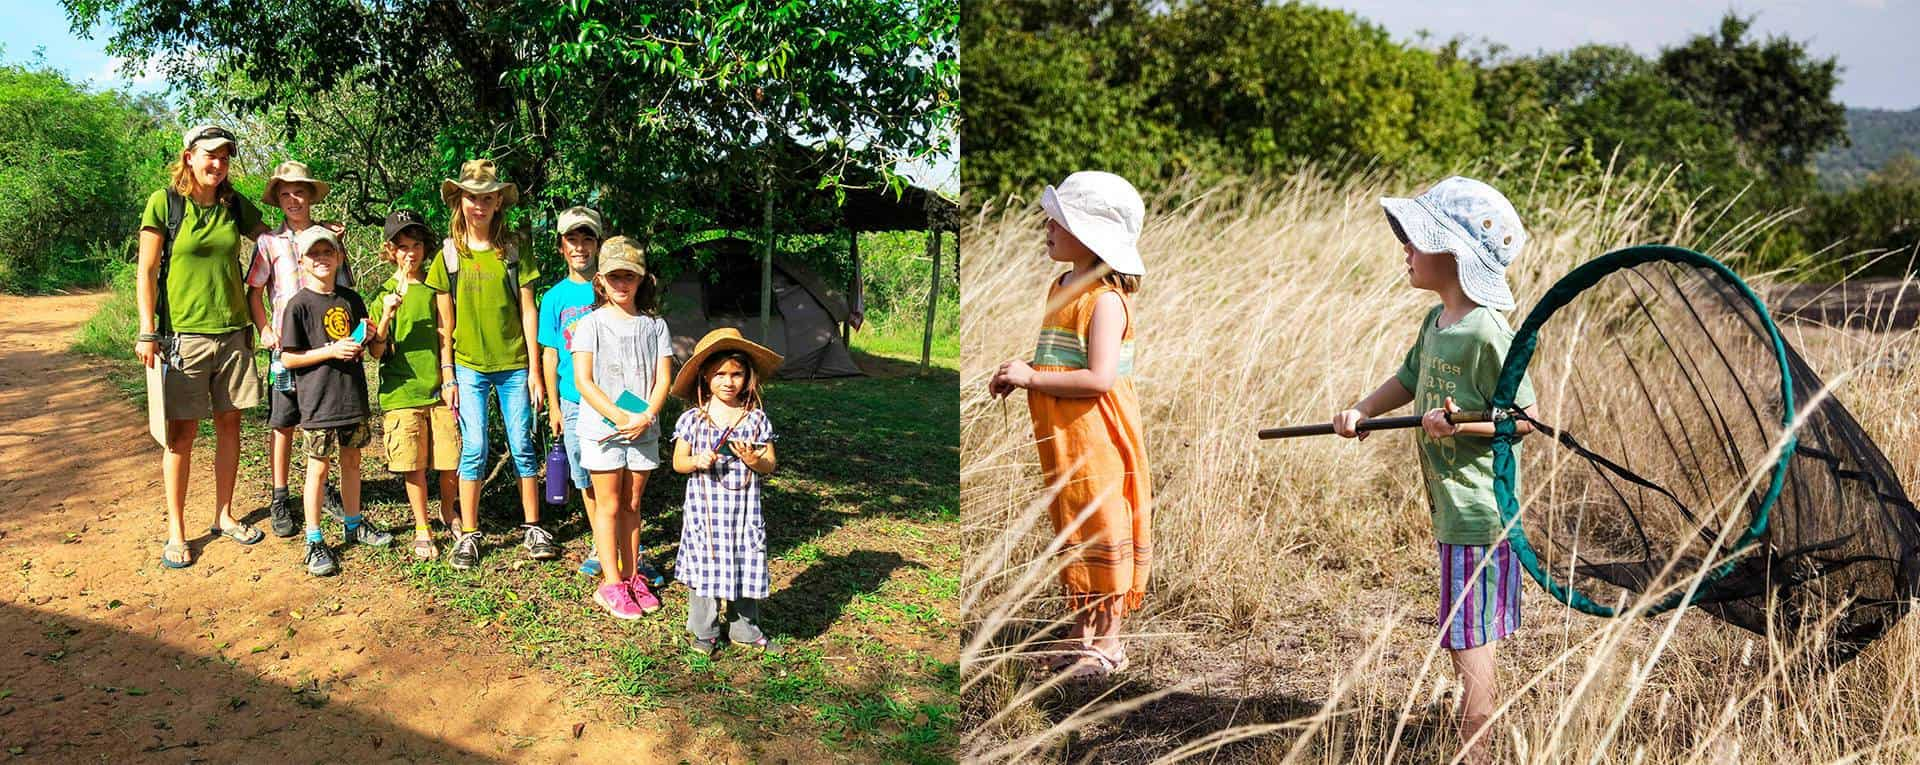 What Are The Benefits Of A Custom Or Tailor-Made Family Safari Vacation In Uganda